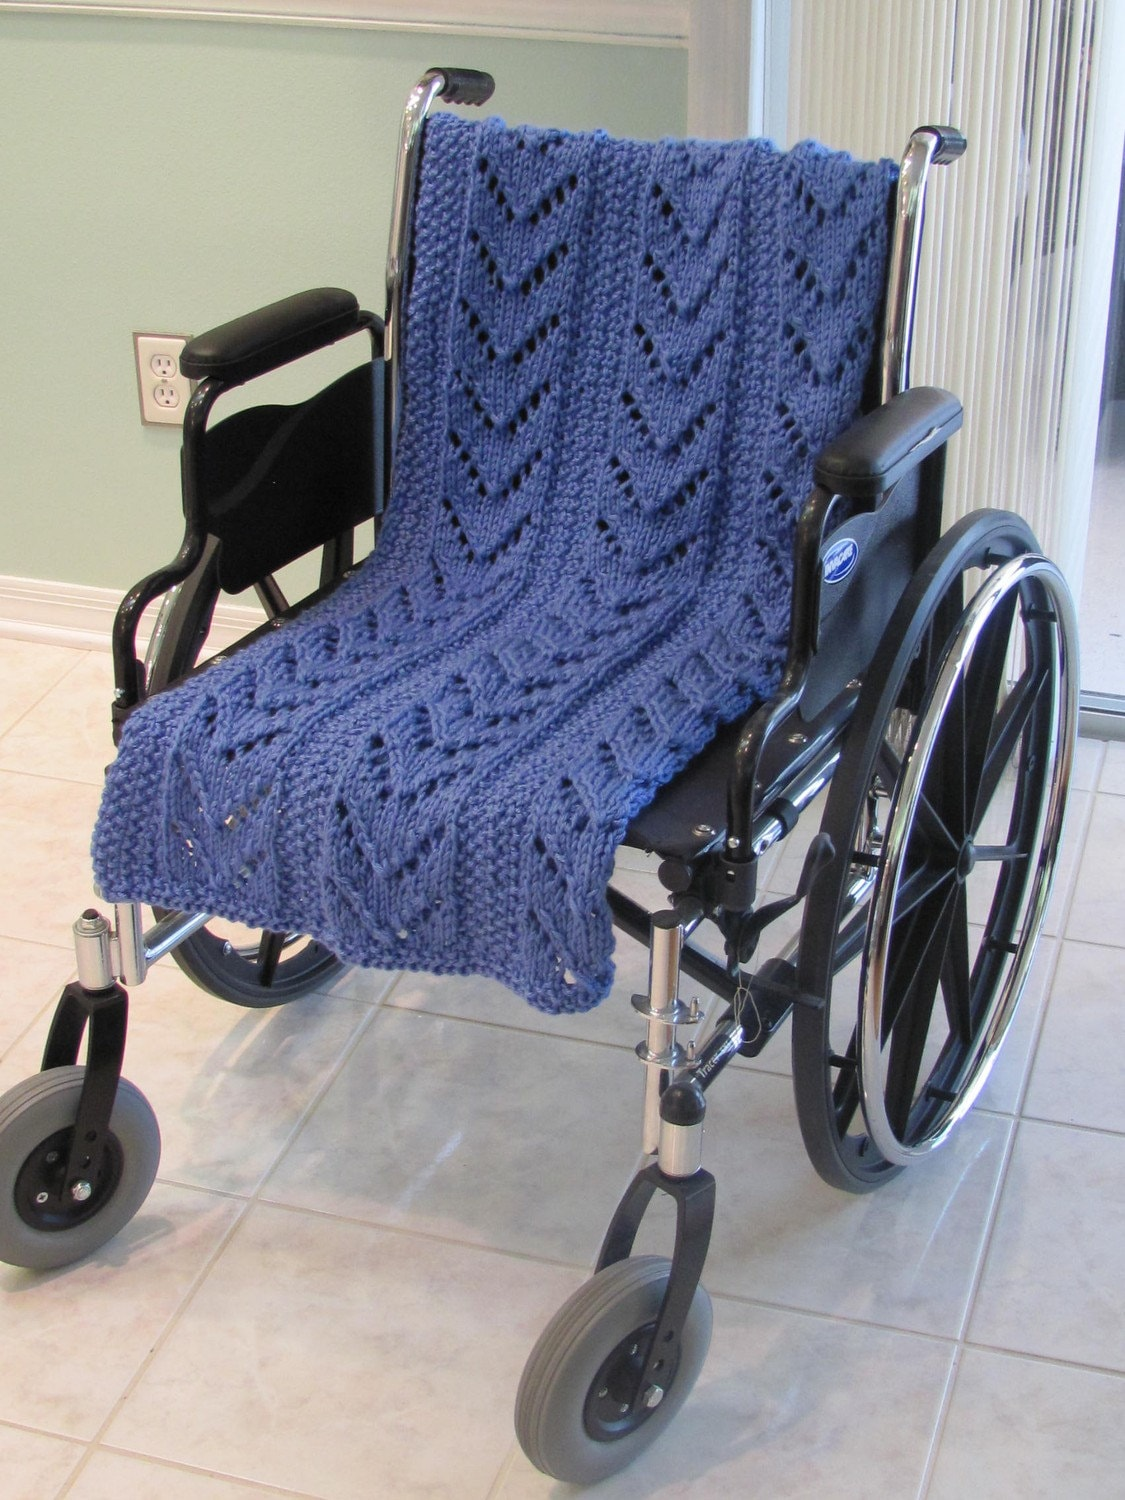 Afghan Knit Special Needs Lap Blanket Hand Knitted By